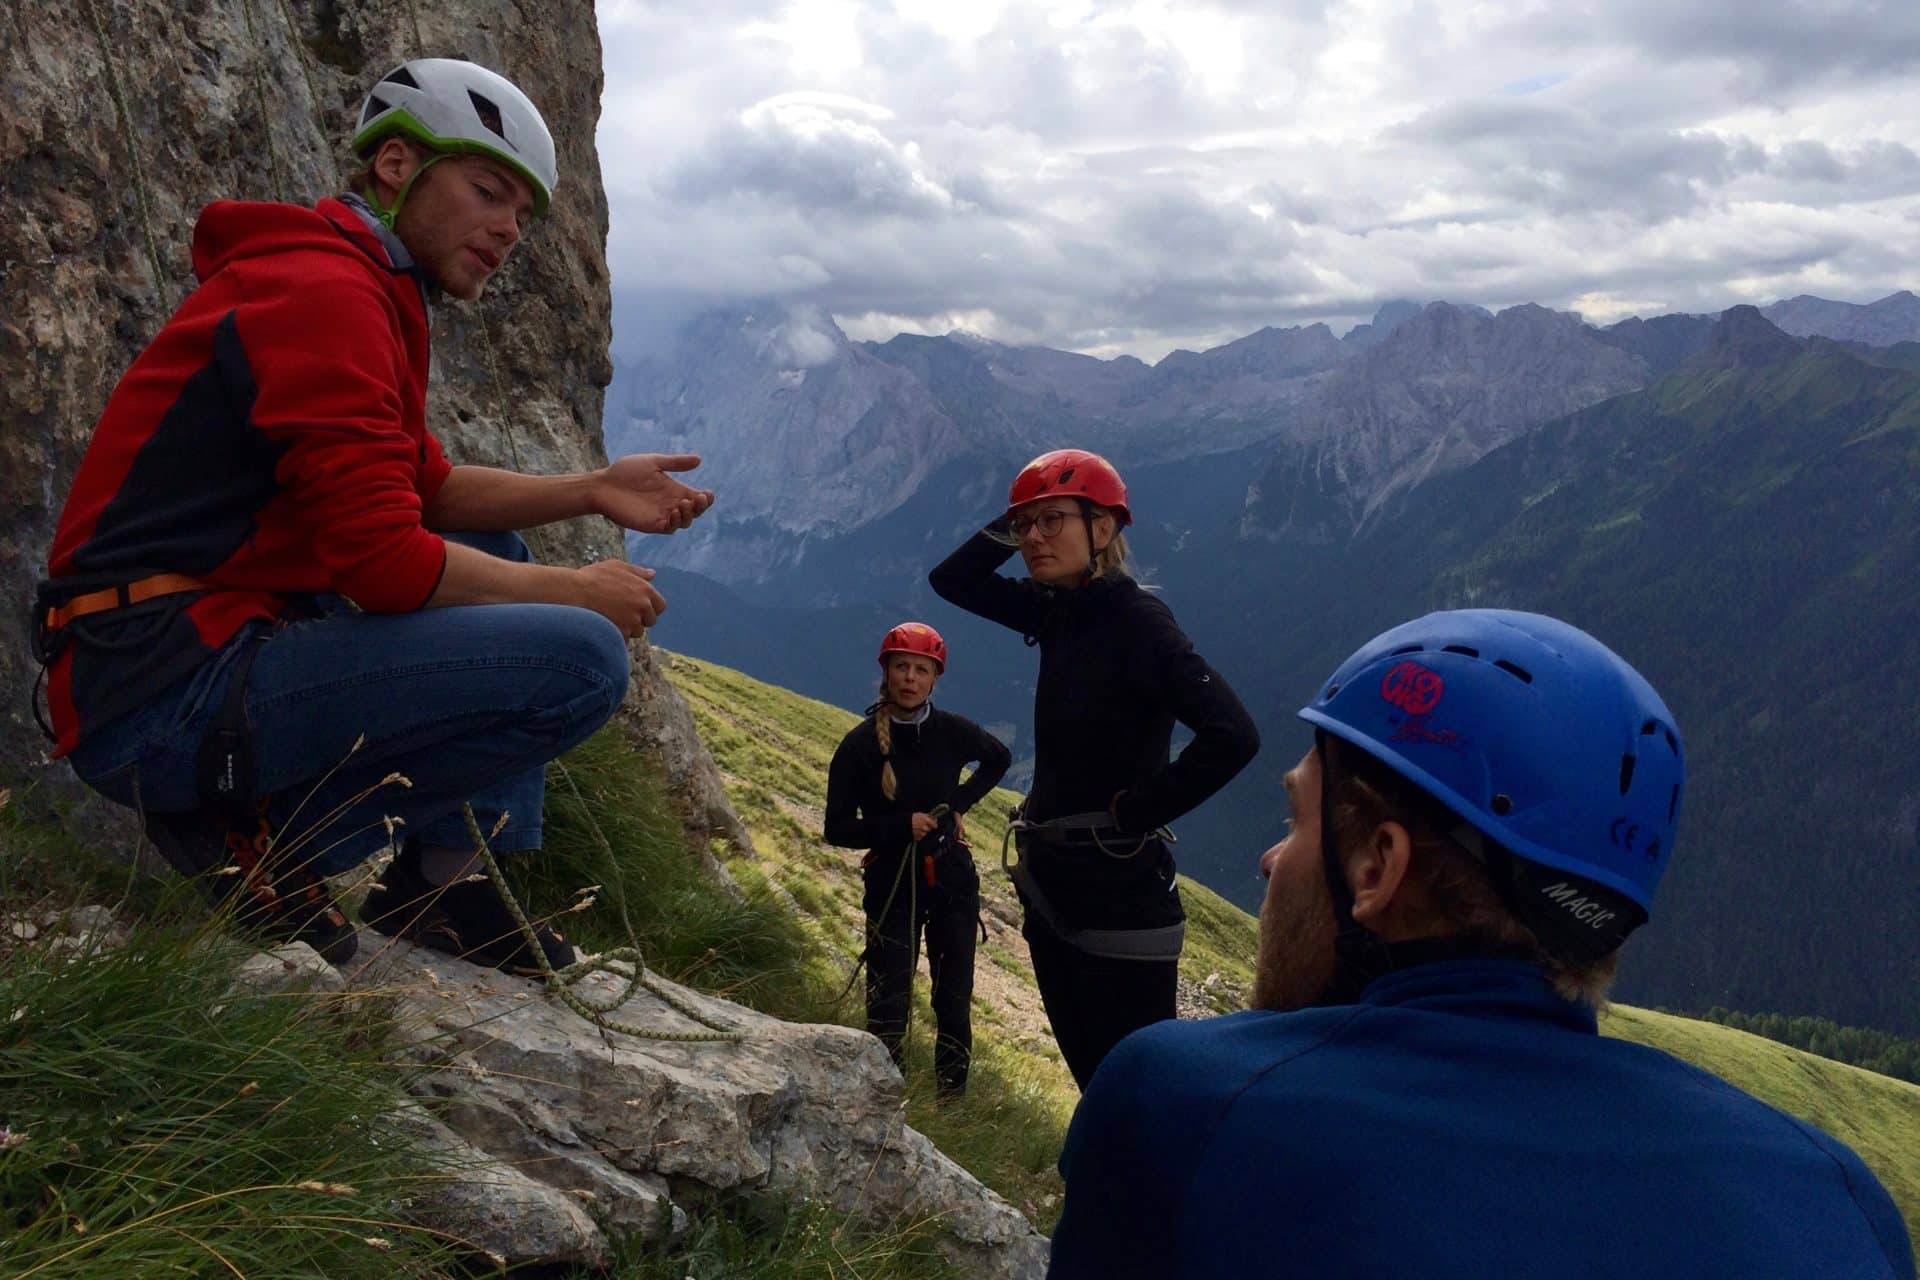 Val Di Fassa rock climbing day tours in the Dolomites